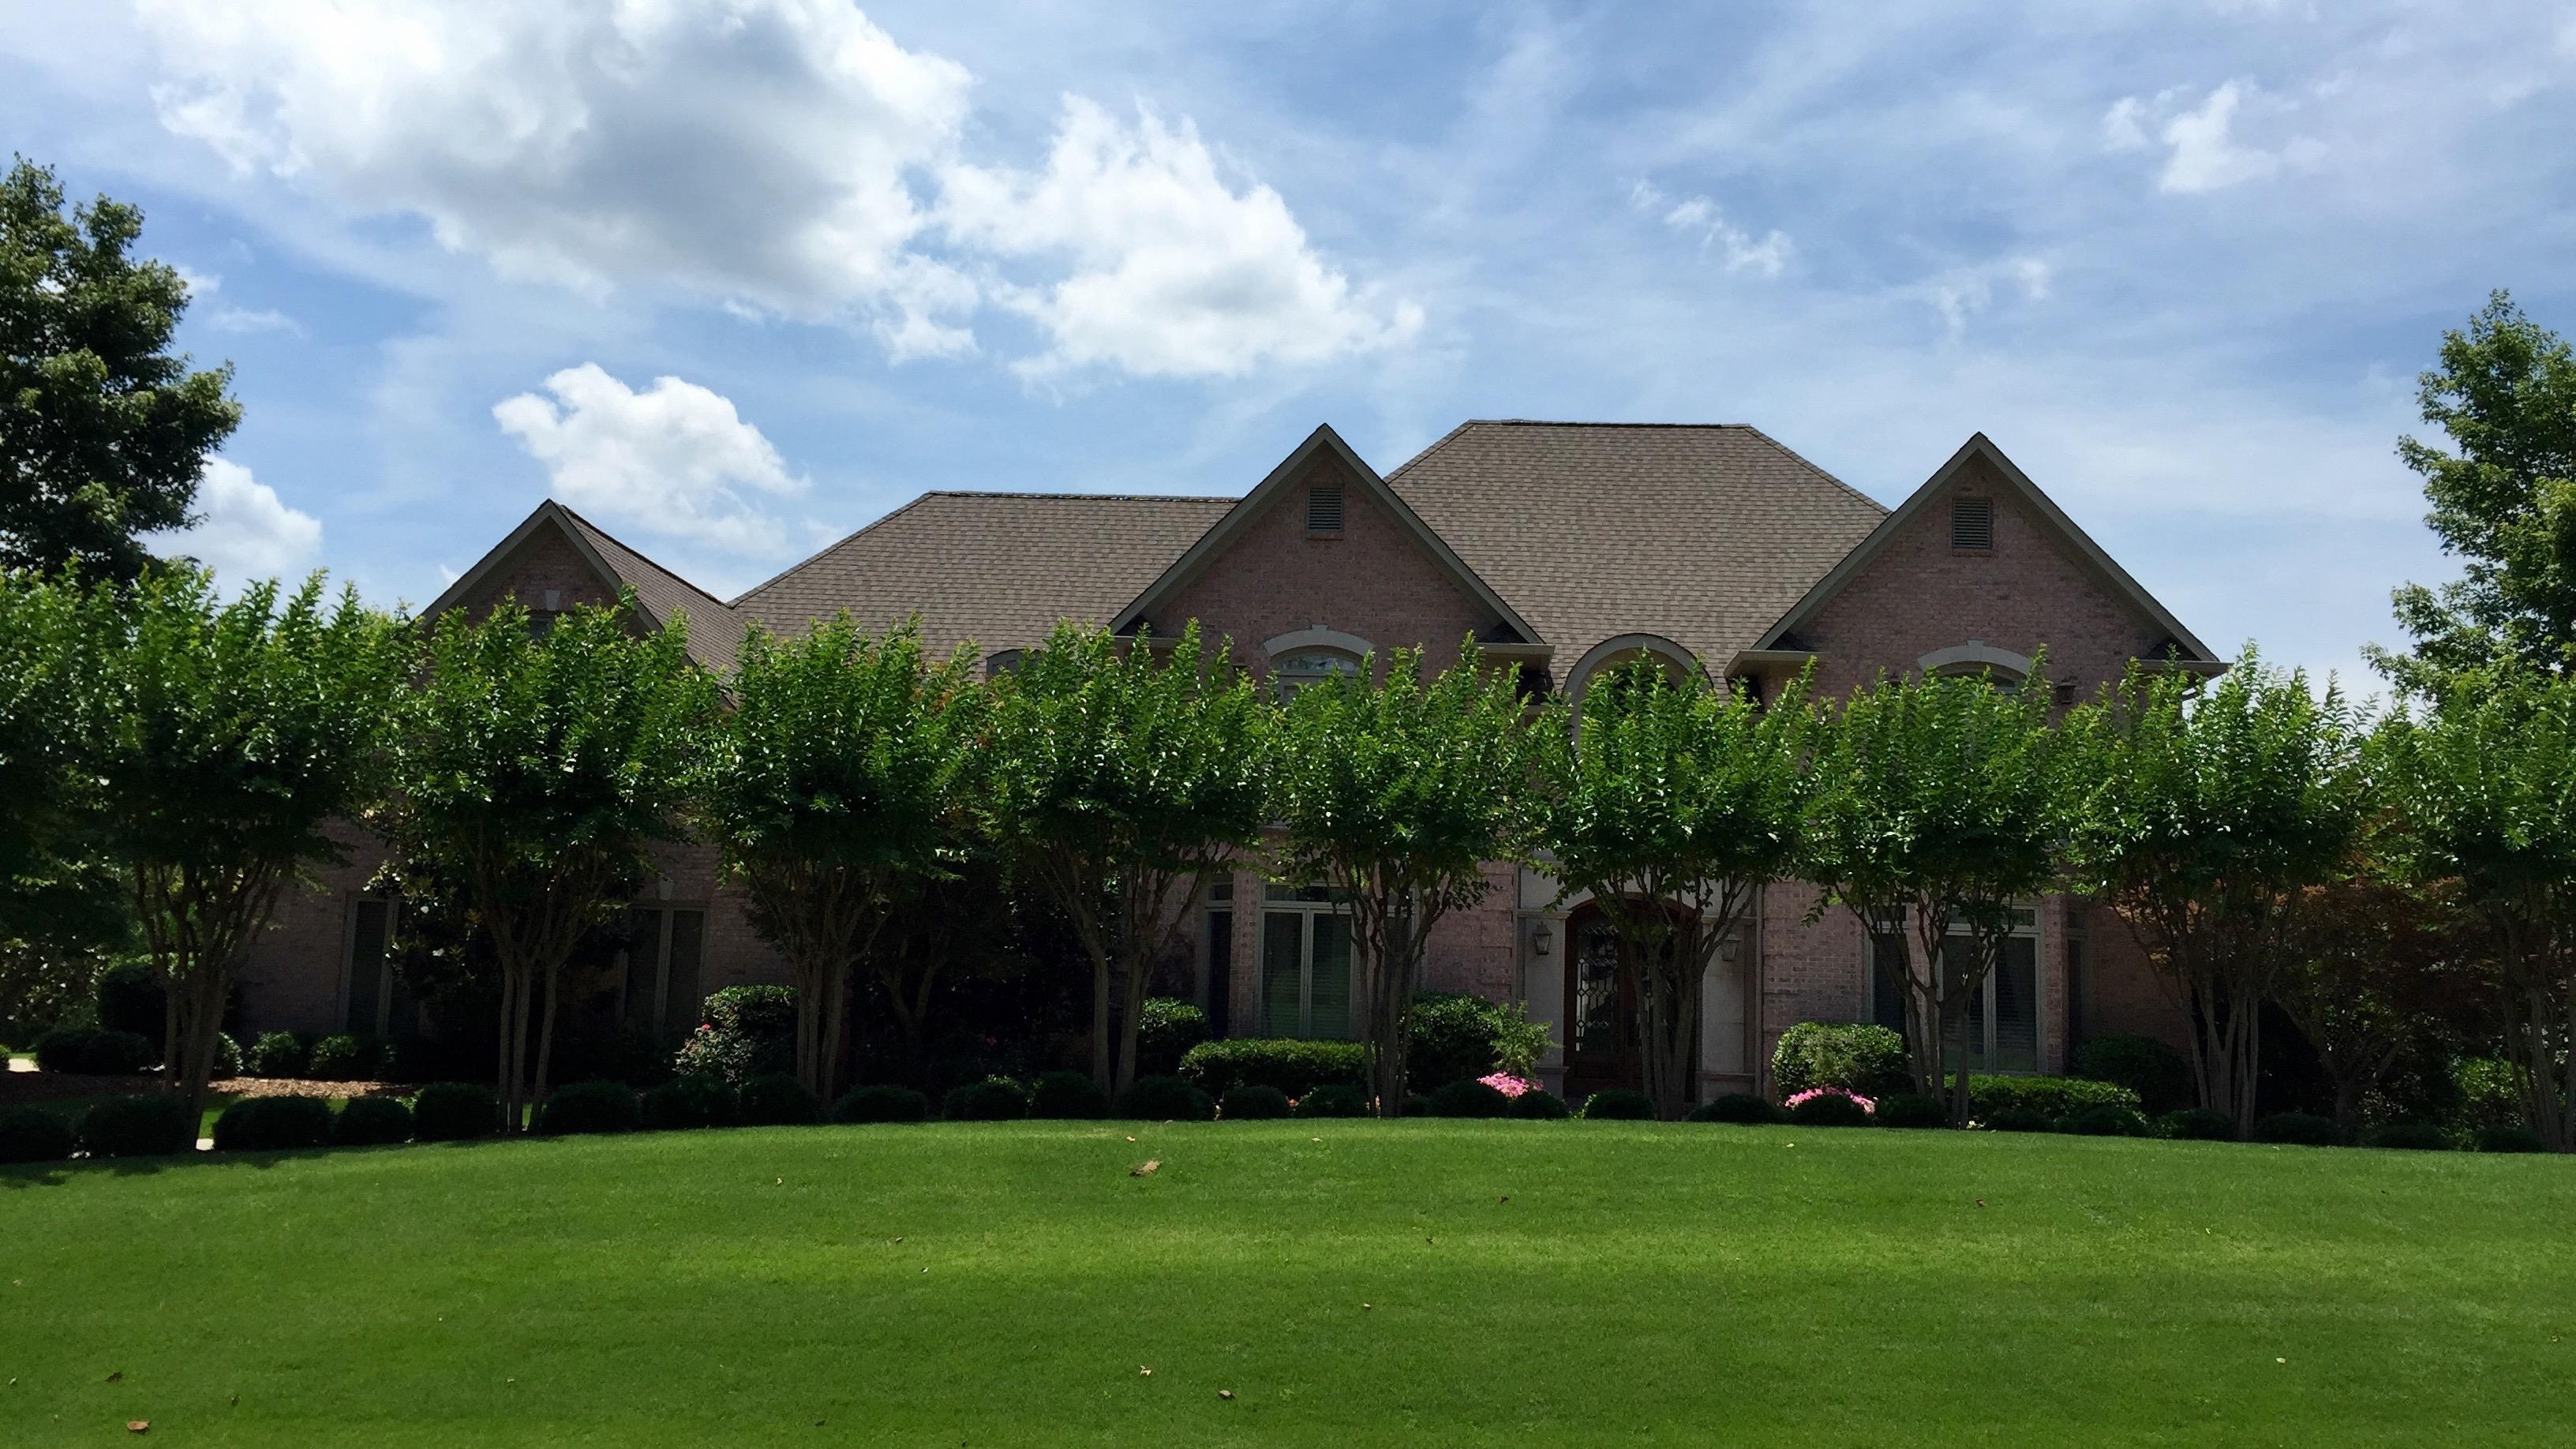 GAF American Harvest shingles installed by Capstone Roofing, LLC in Inverness, Alabama.